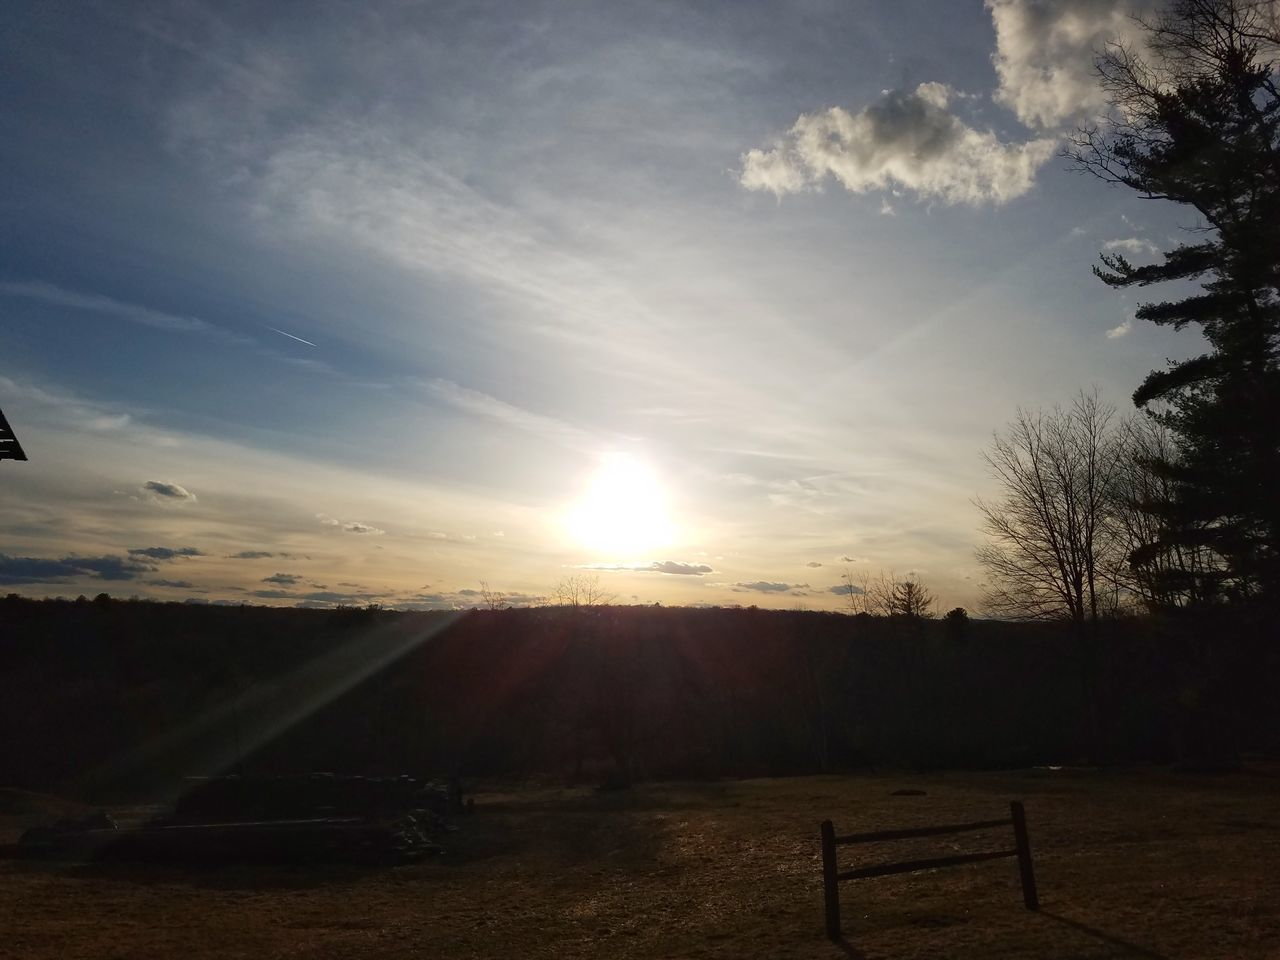 sunbeam, landscape, tranquility, tranquil scene, beauty in nature, sky, sunset, no people, field, nature, scenics, sunlight, sun, outdoors, tree, day